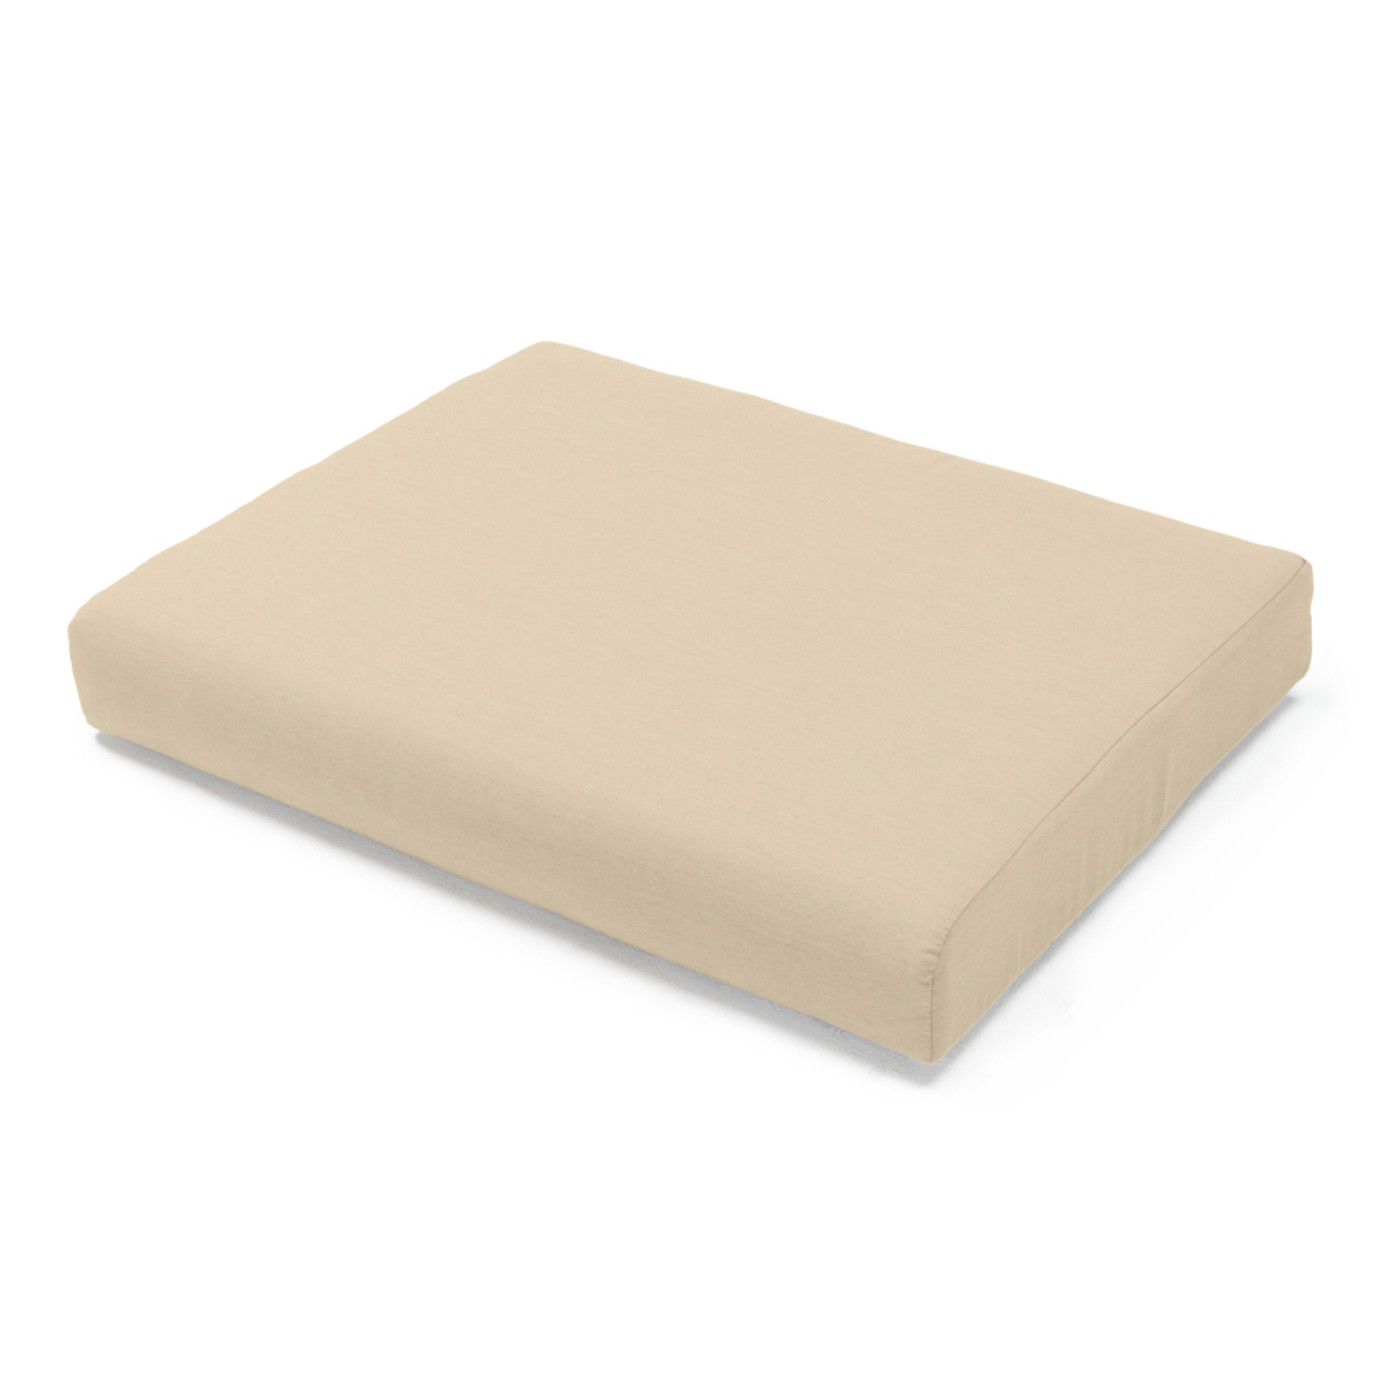 Portofino Comfort Armless Chair Base Cushion - Heather Beige